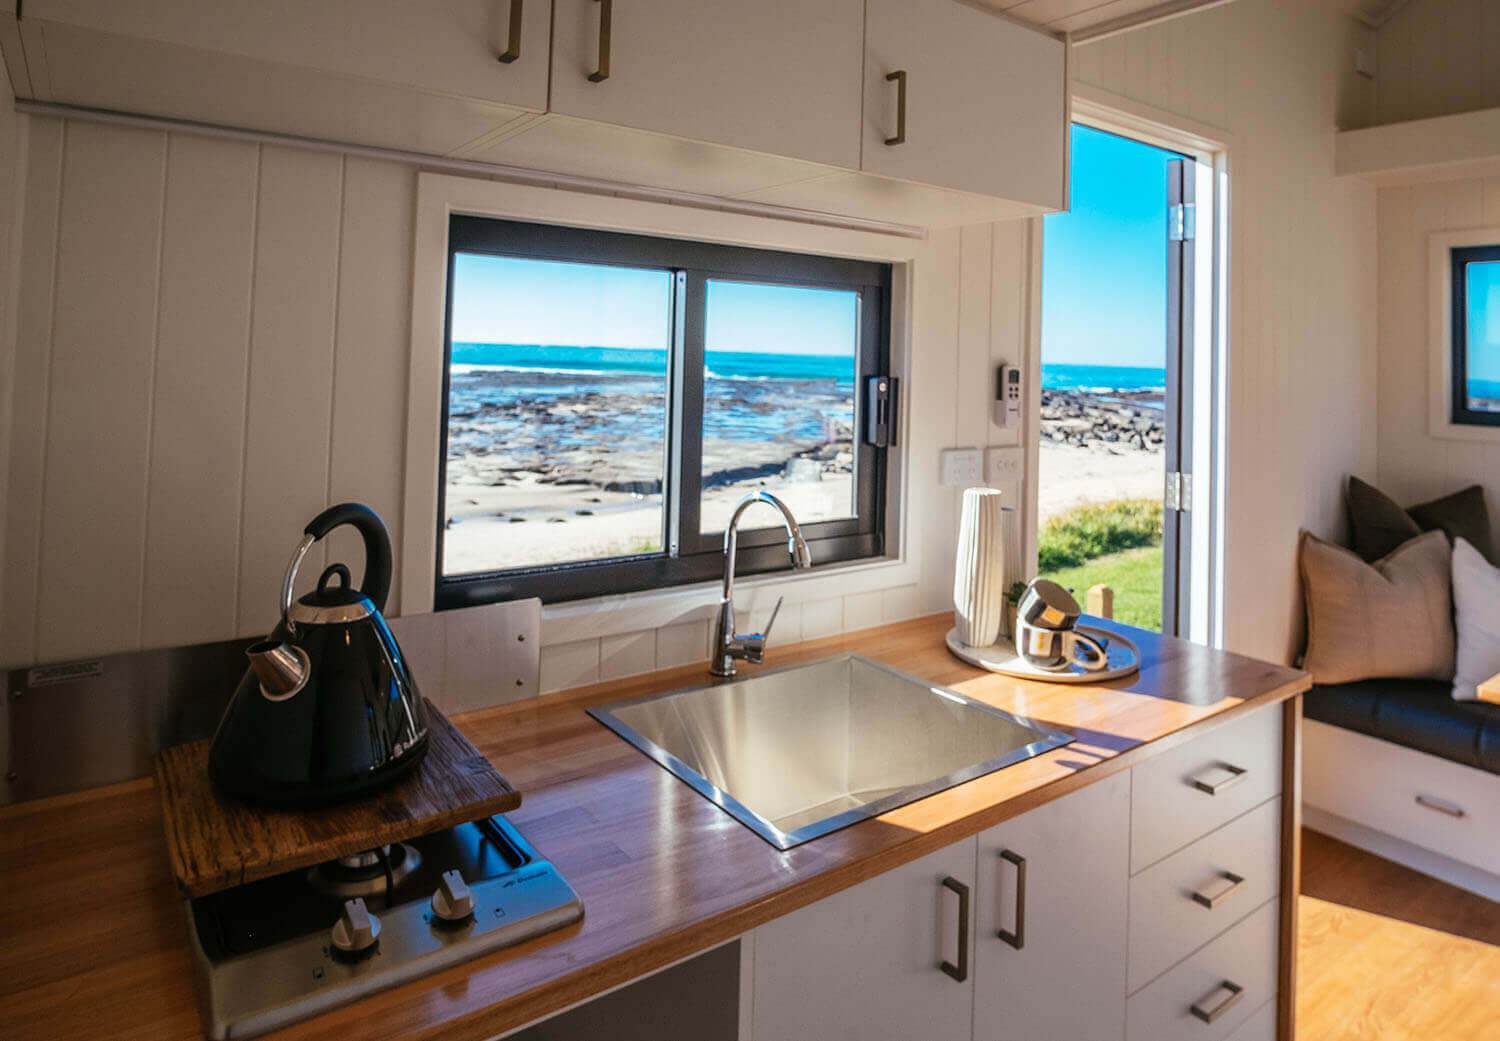 4800sl_0005_Tiny Home - Independent Series 4800 Kitchen